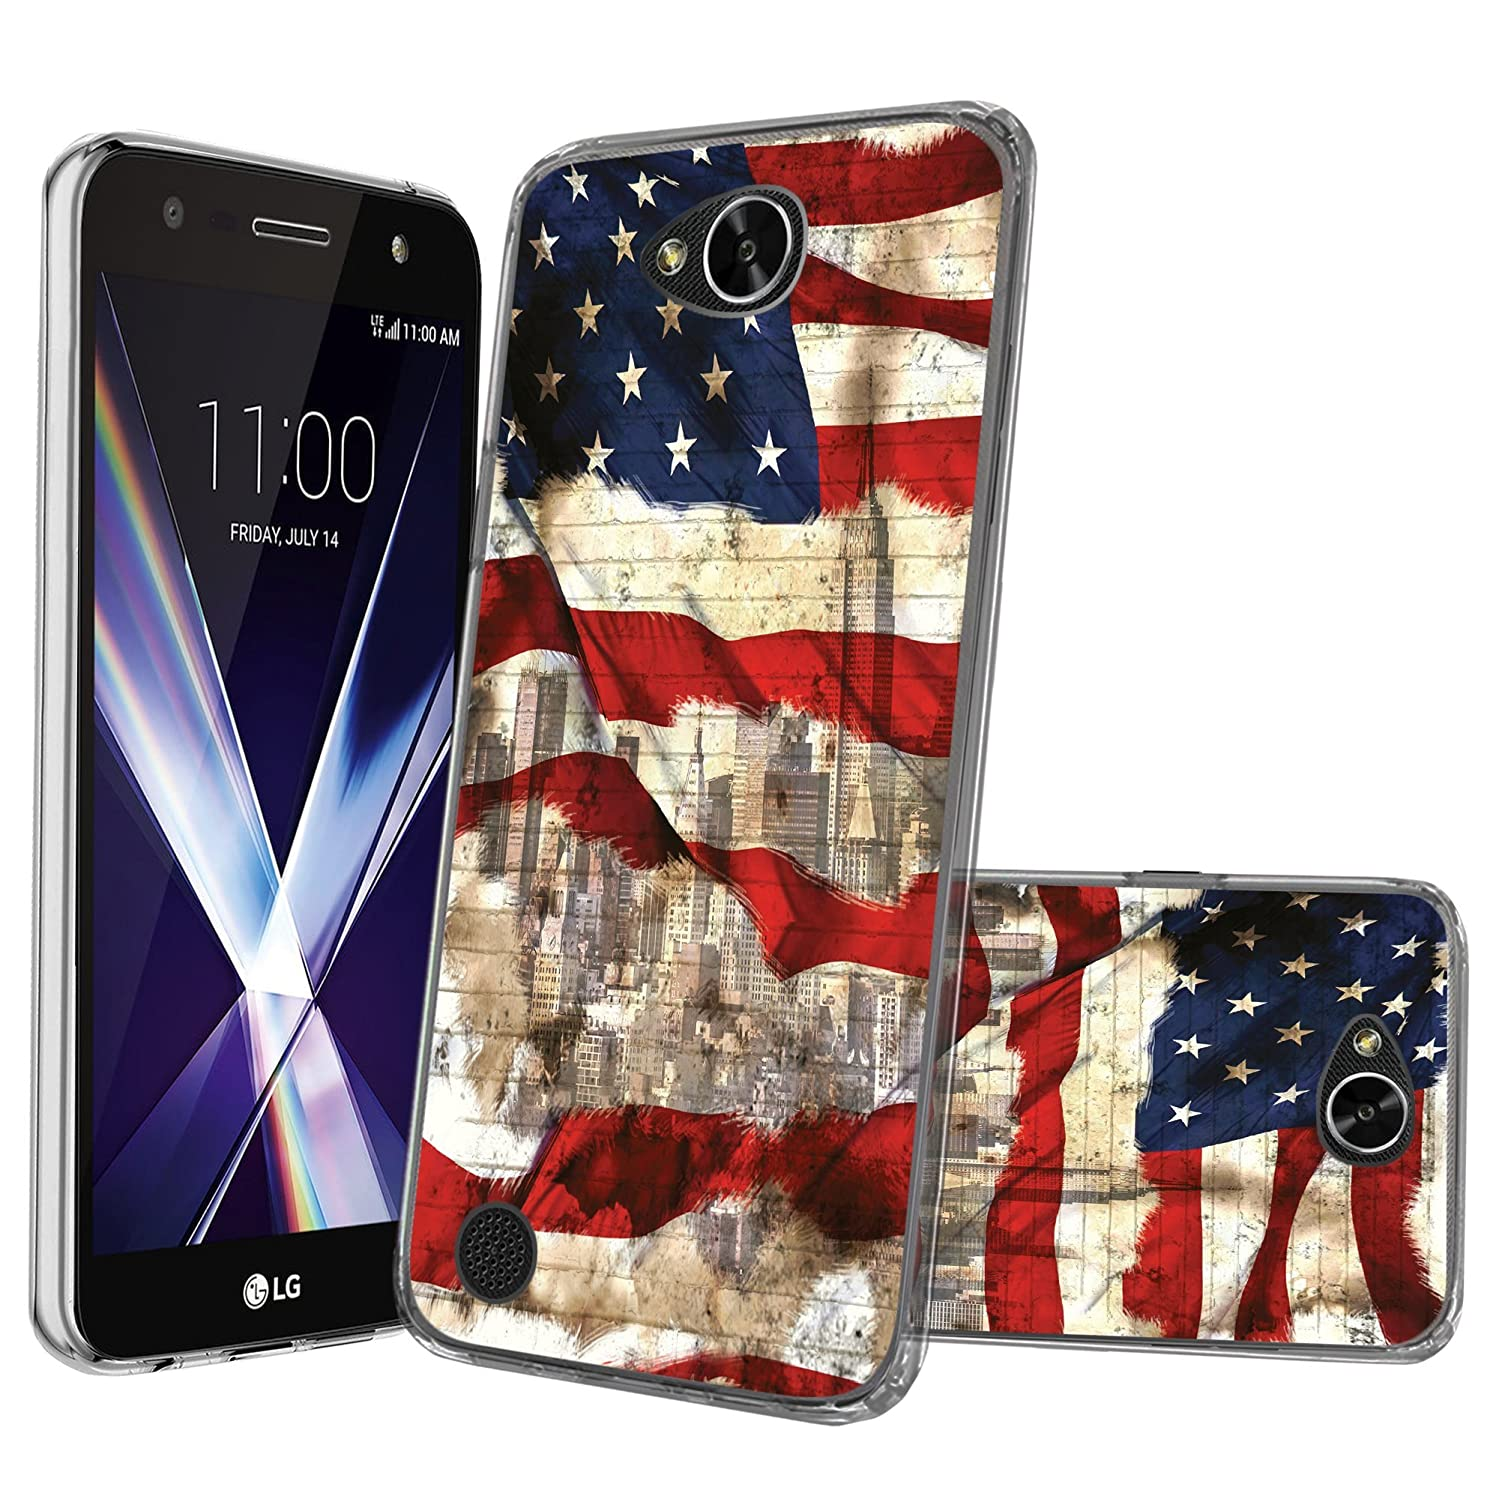 Flex Force by MINITURTLE Compatible with LG Fiesta, LG Fiesta 2, LG X Power 2, LG X Charge(M320F) Ultra-Clear Transparent Silicone Case - New York USA Flag